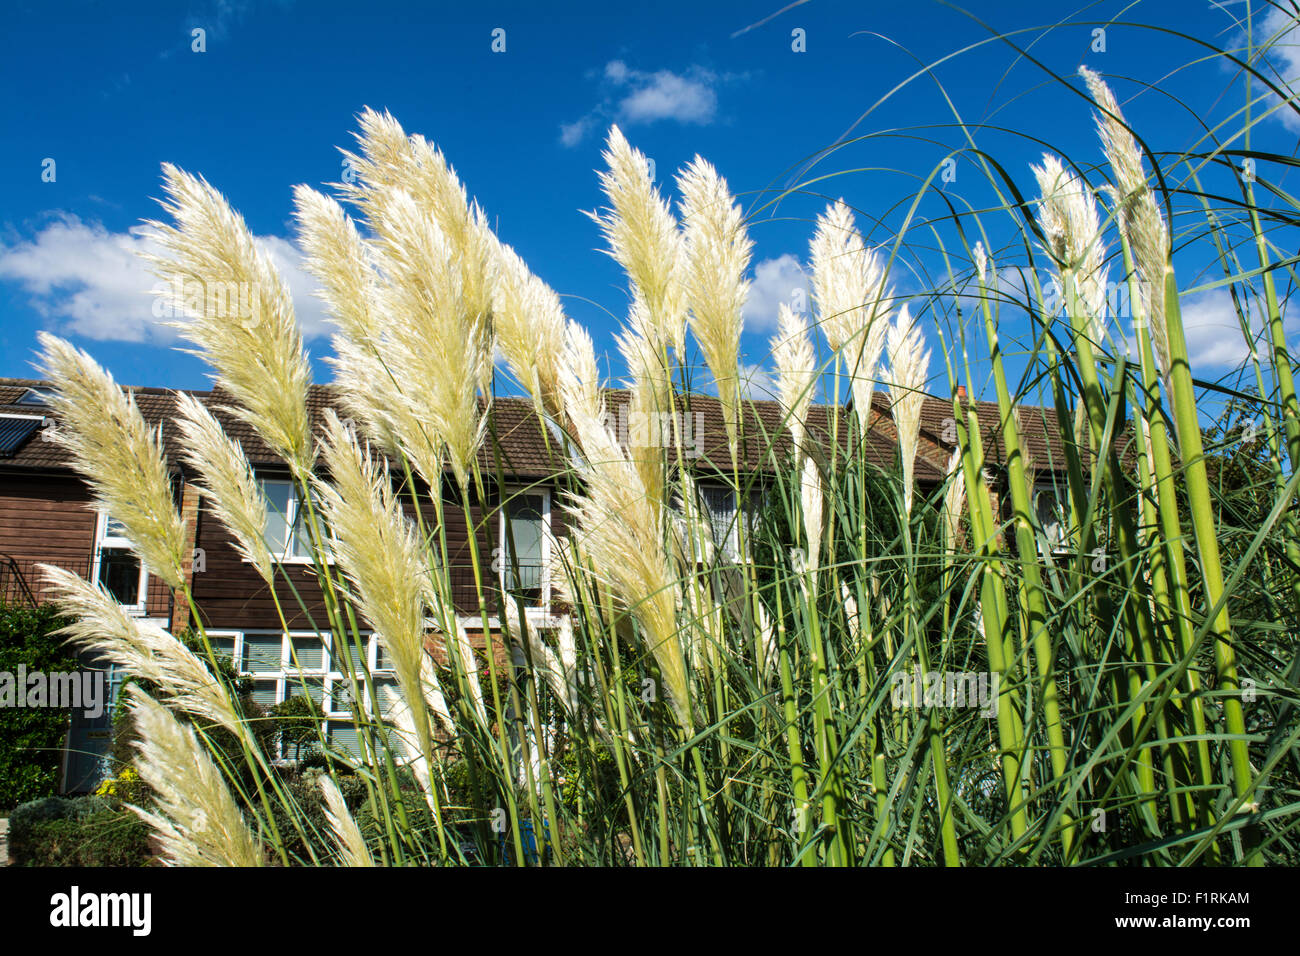 Net curtains and pampas grass signs of swinging suburbia - Stock Image